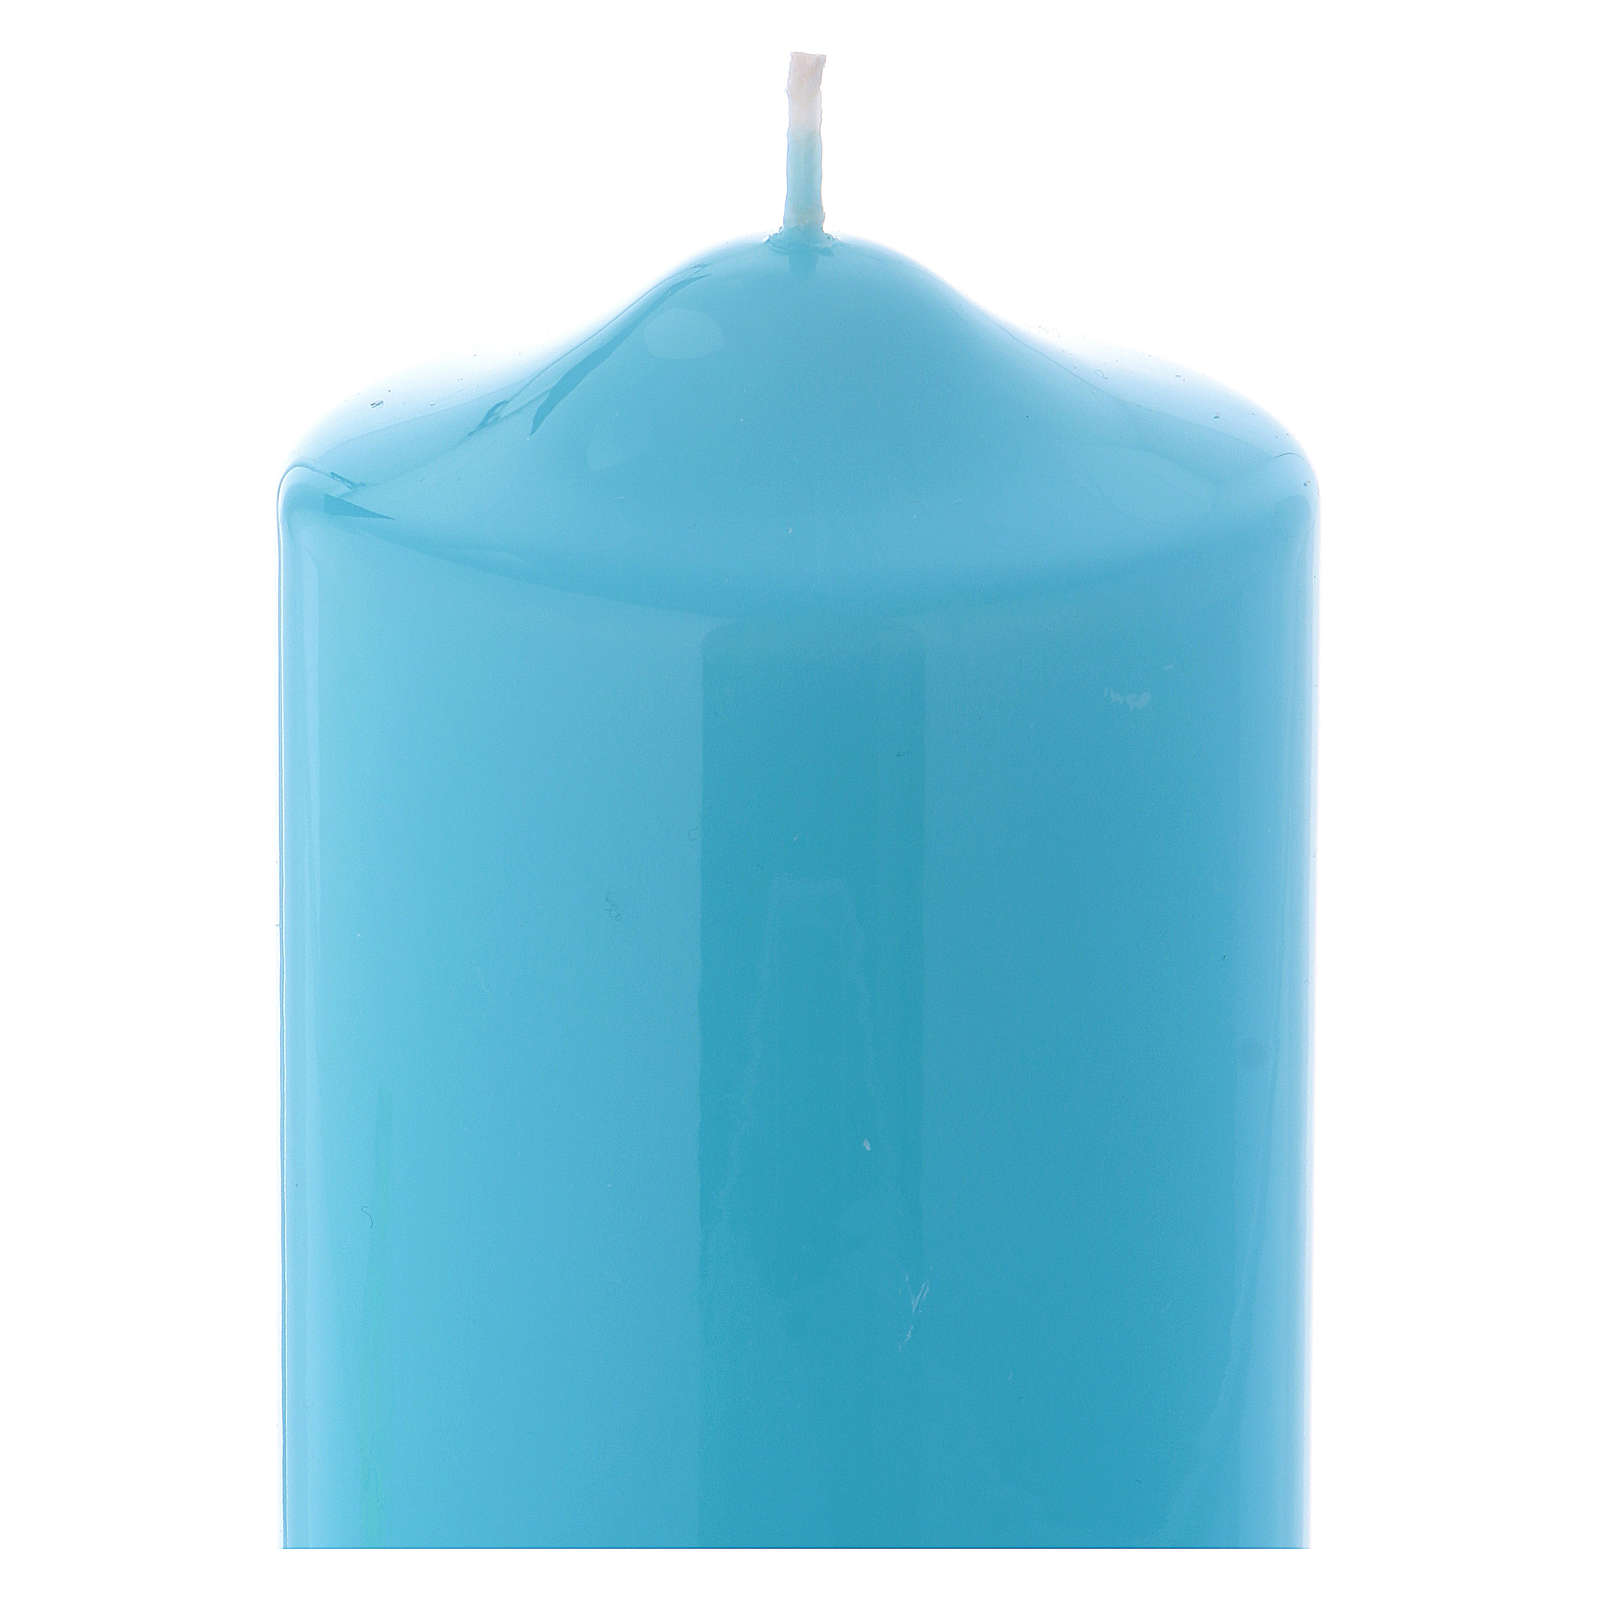 Ceralacca wax candle 15x8 cm, light blue 3